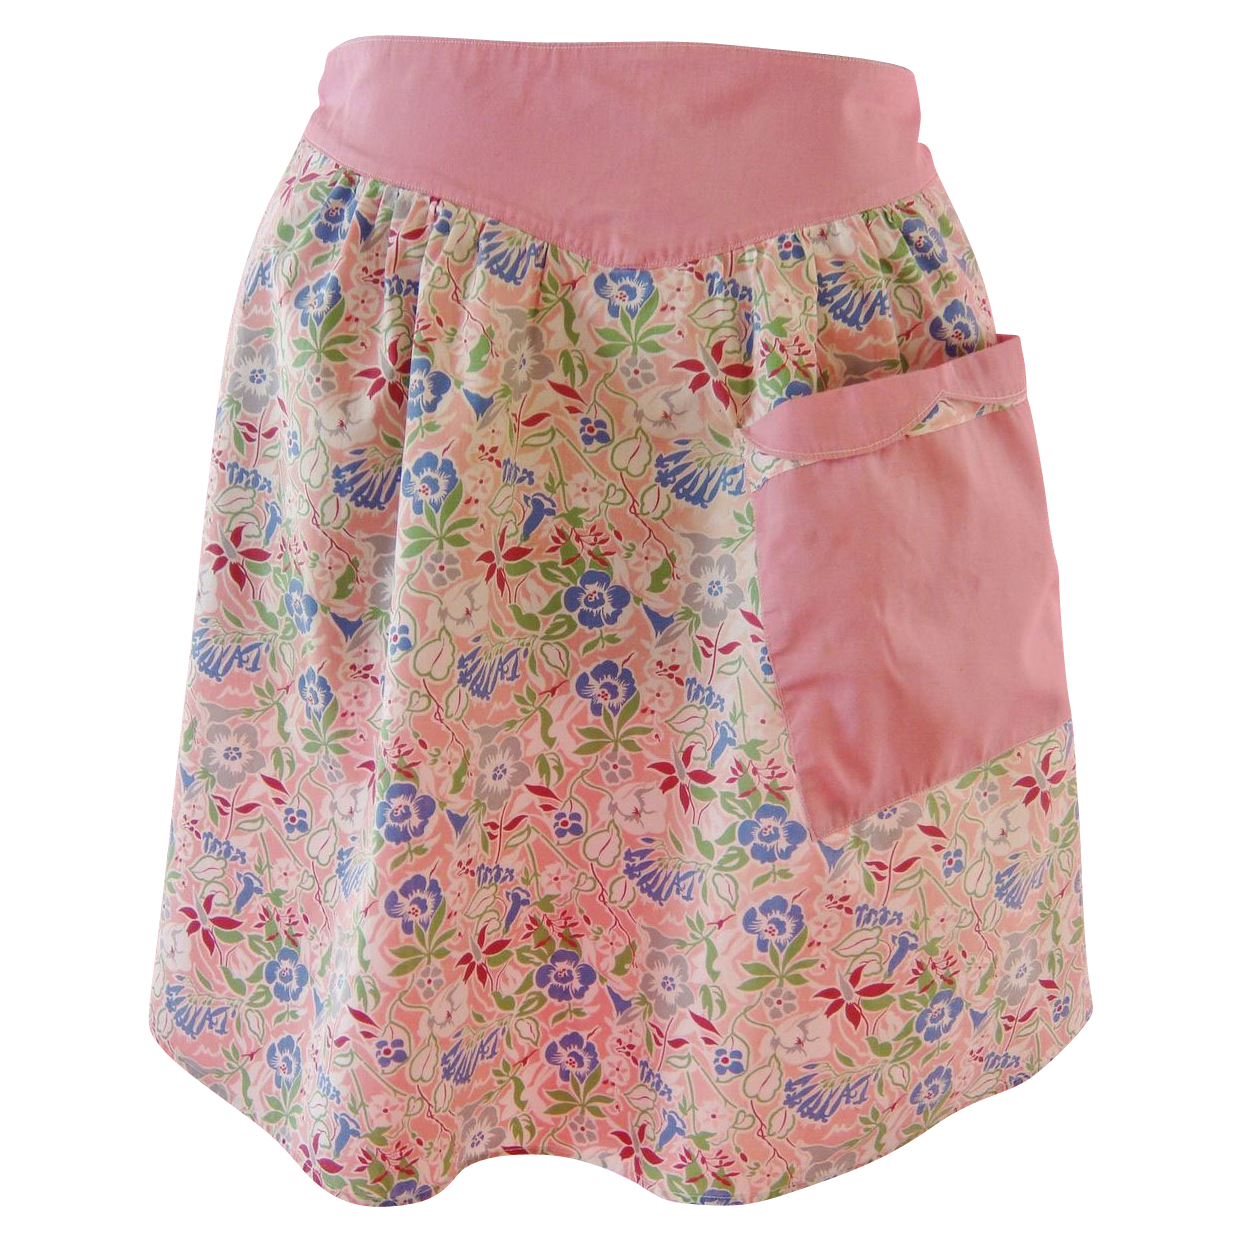 1940s-1950s Vintage Apron, Multi Colored Floral Chintz